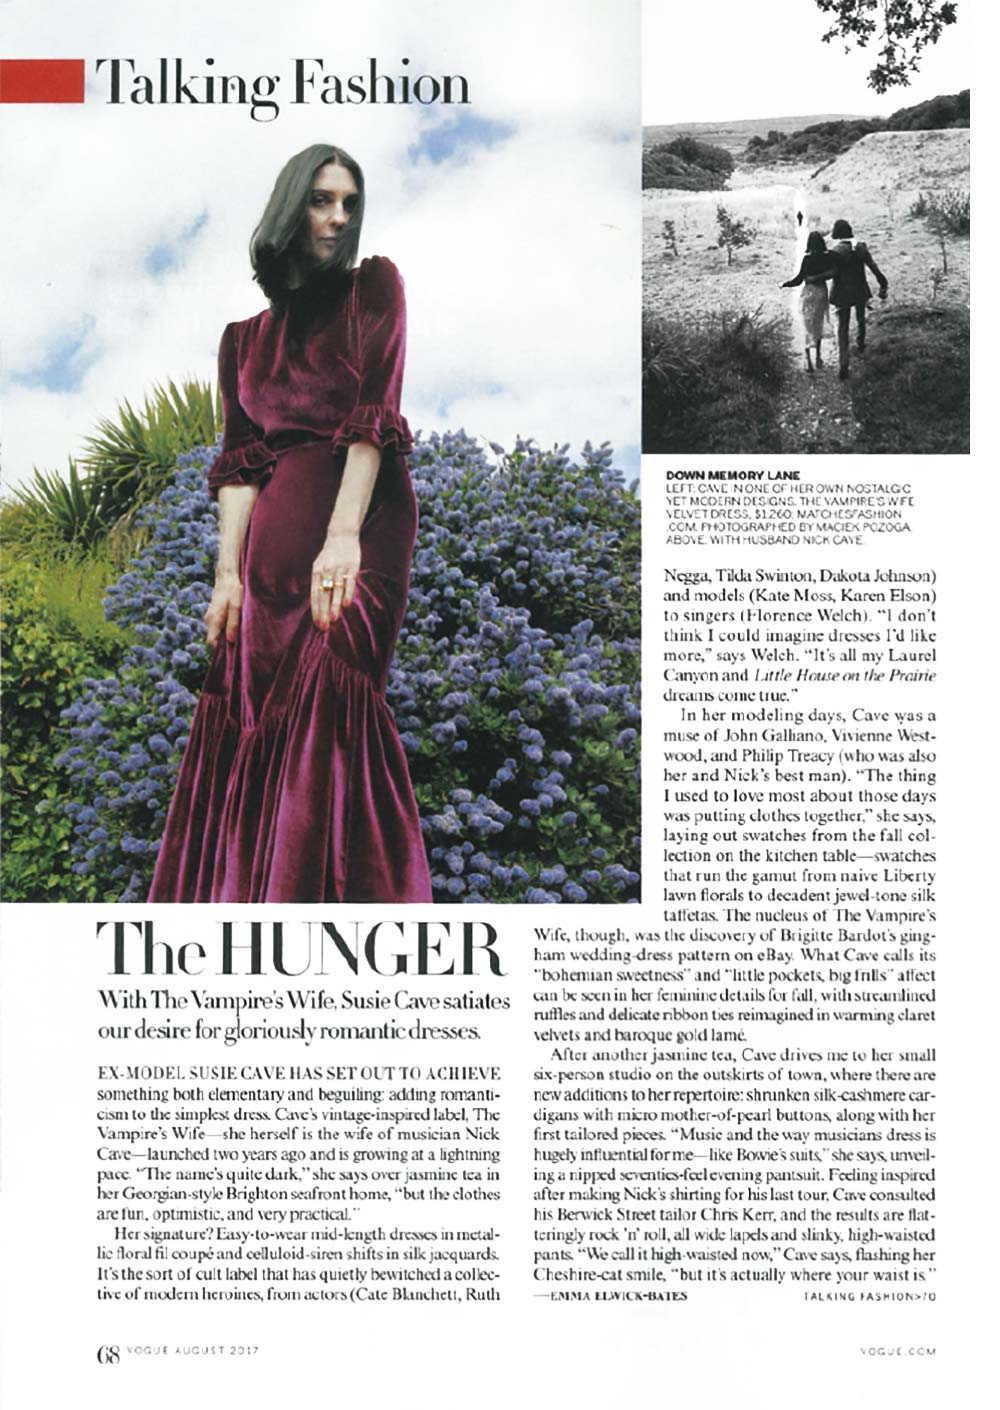 The Vampire's Wife in Vogue US